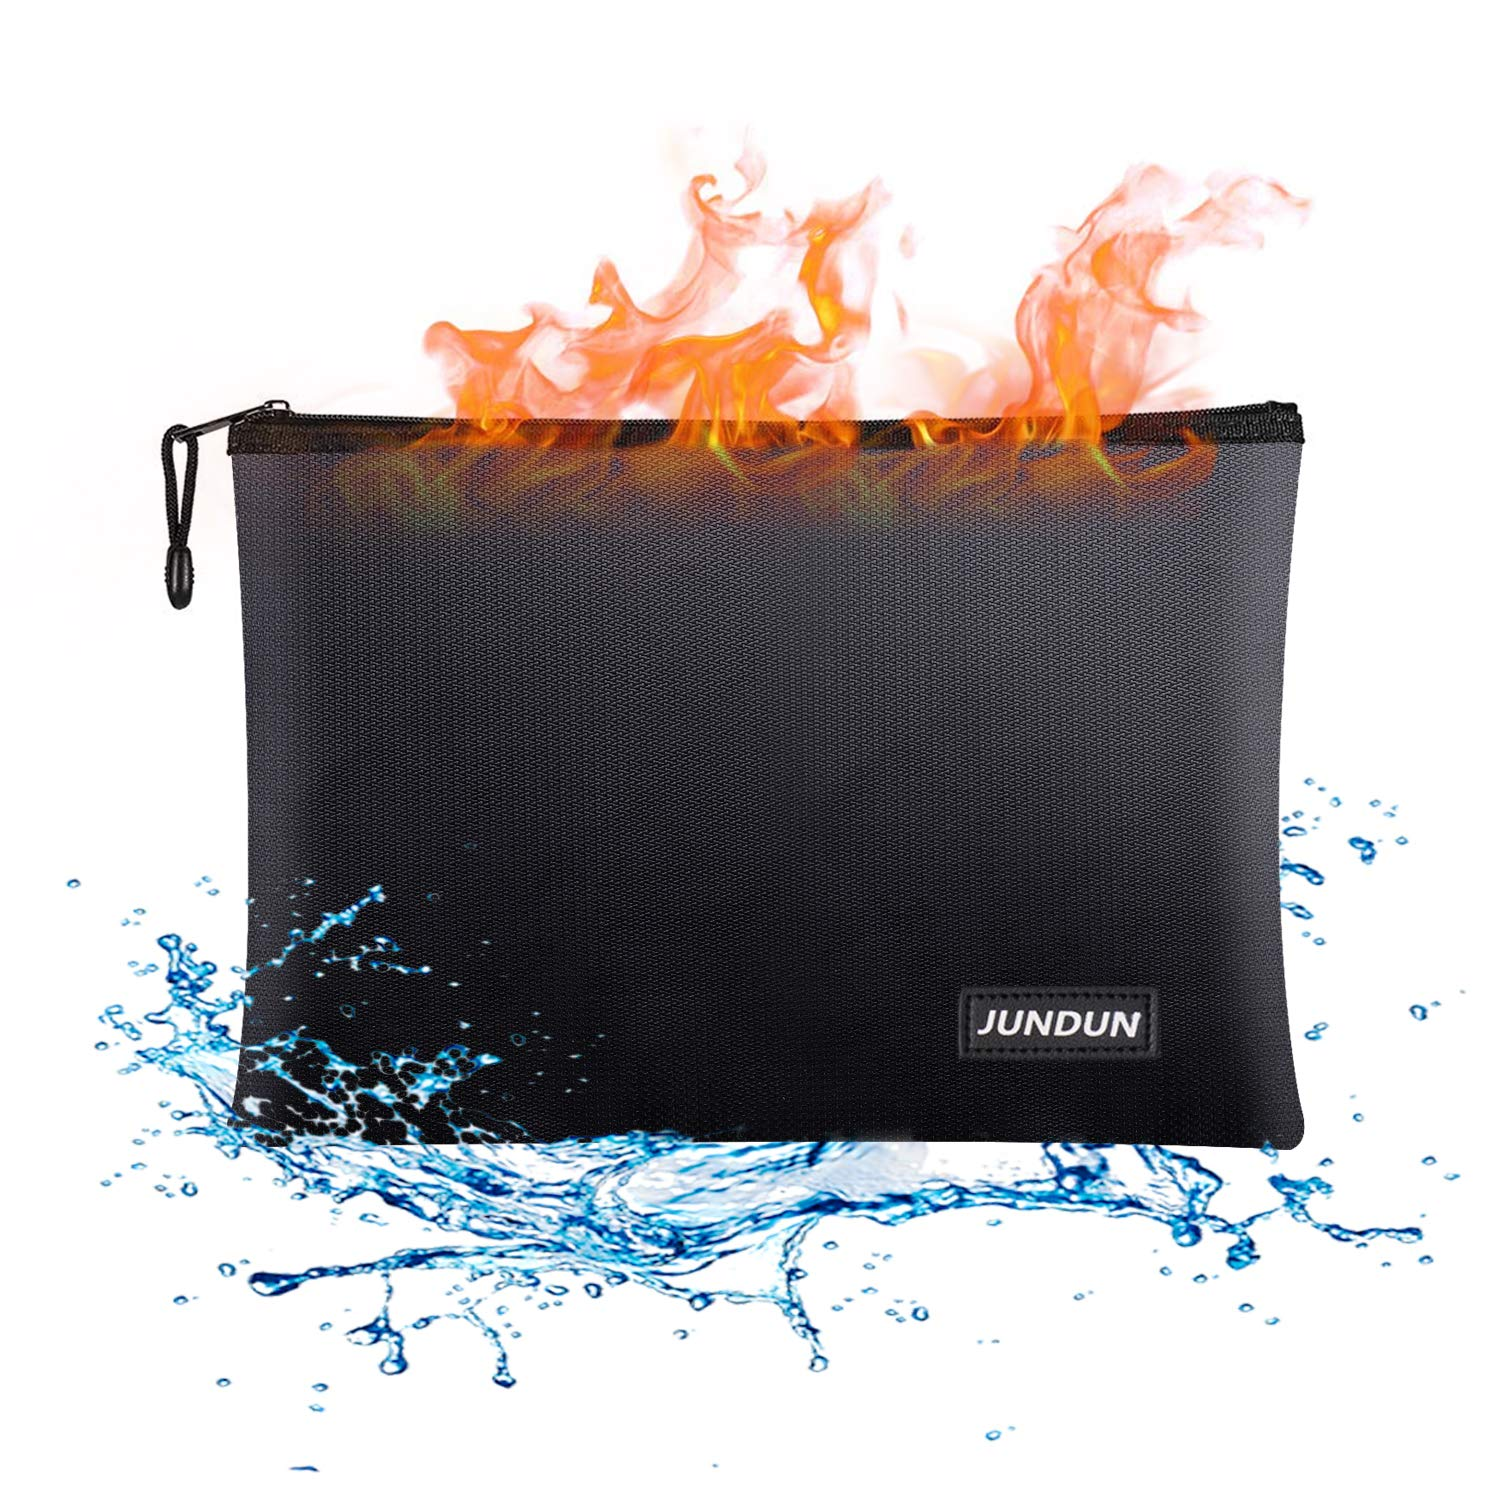 JUNDUN Fireproof Document Bags,13.4''x 9.4''Waterproof and Fireproof Money Bag,Fire Resistant Safe Storage Pouch with Zipper for A4 Document Holder,File,Cash and Tablet by JUNDUN